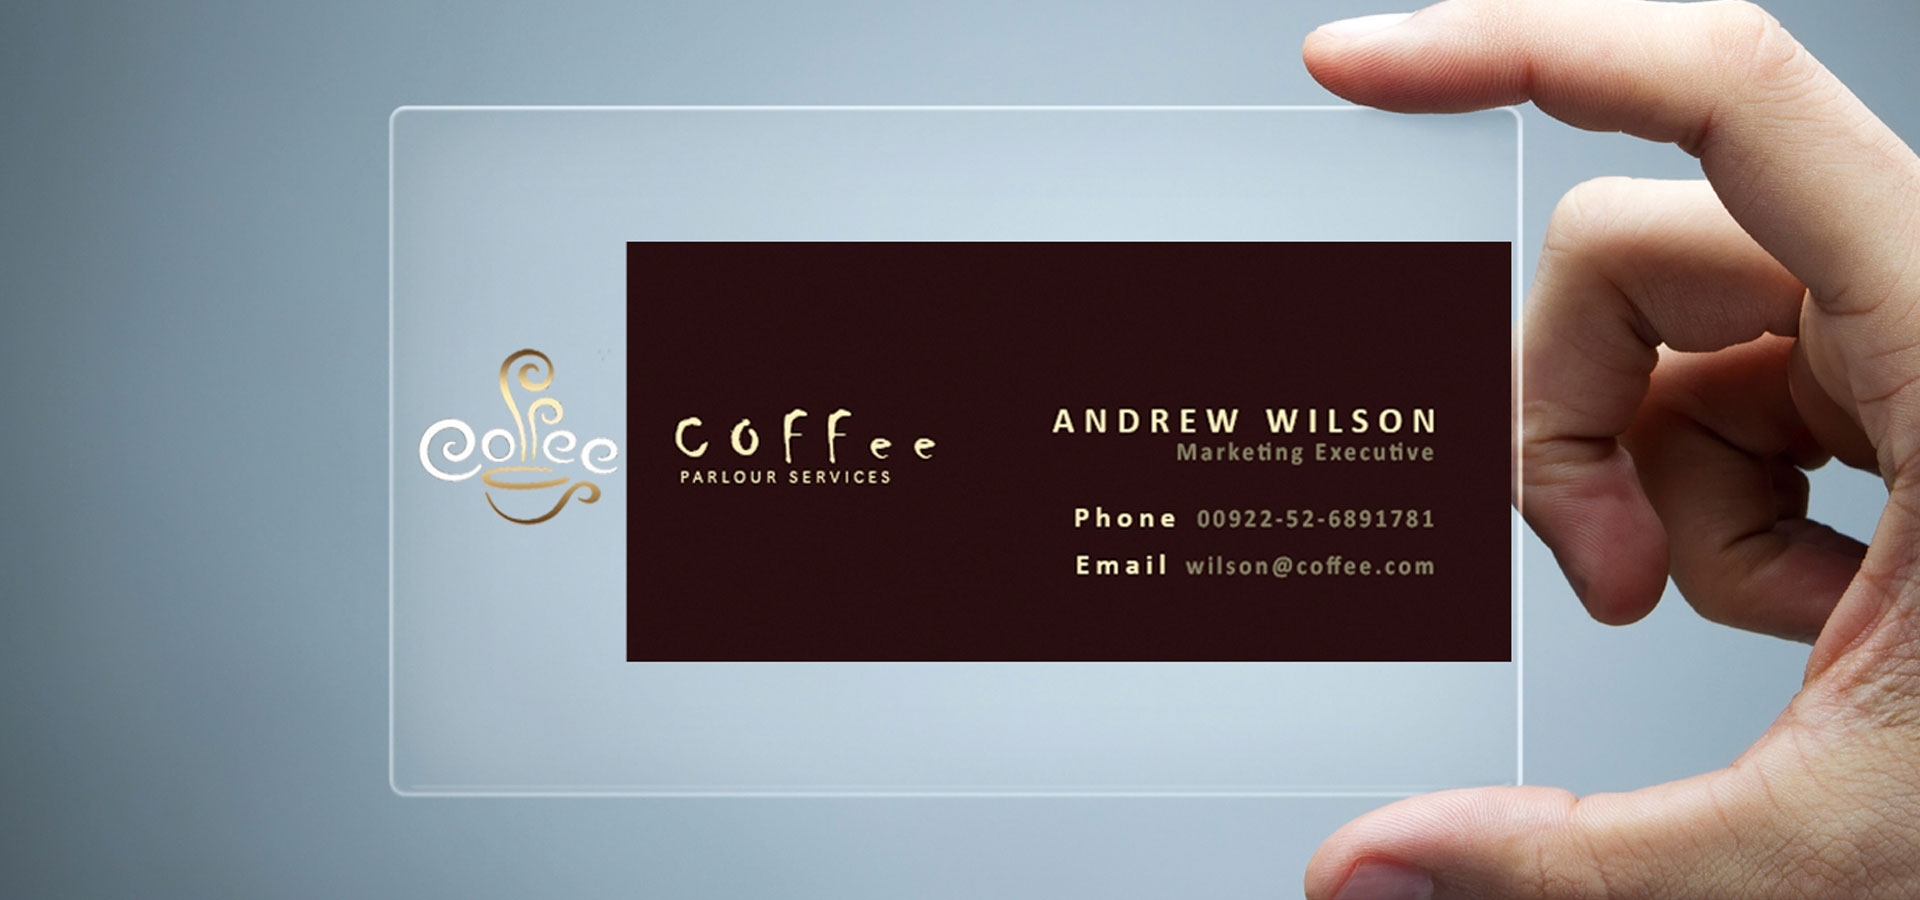 26+ Transparent Business Card Templates – Illustrator, Ms With Regard To Business Cards For Teachers Templates Free